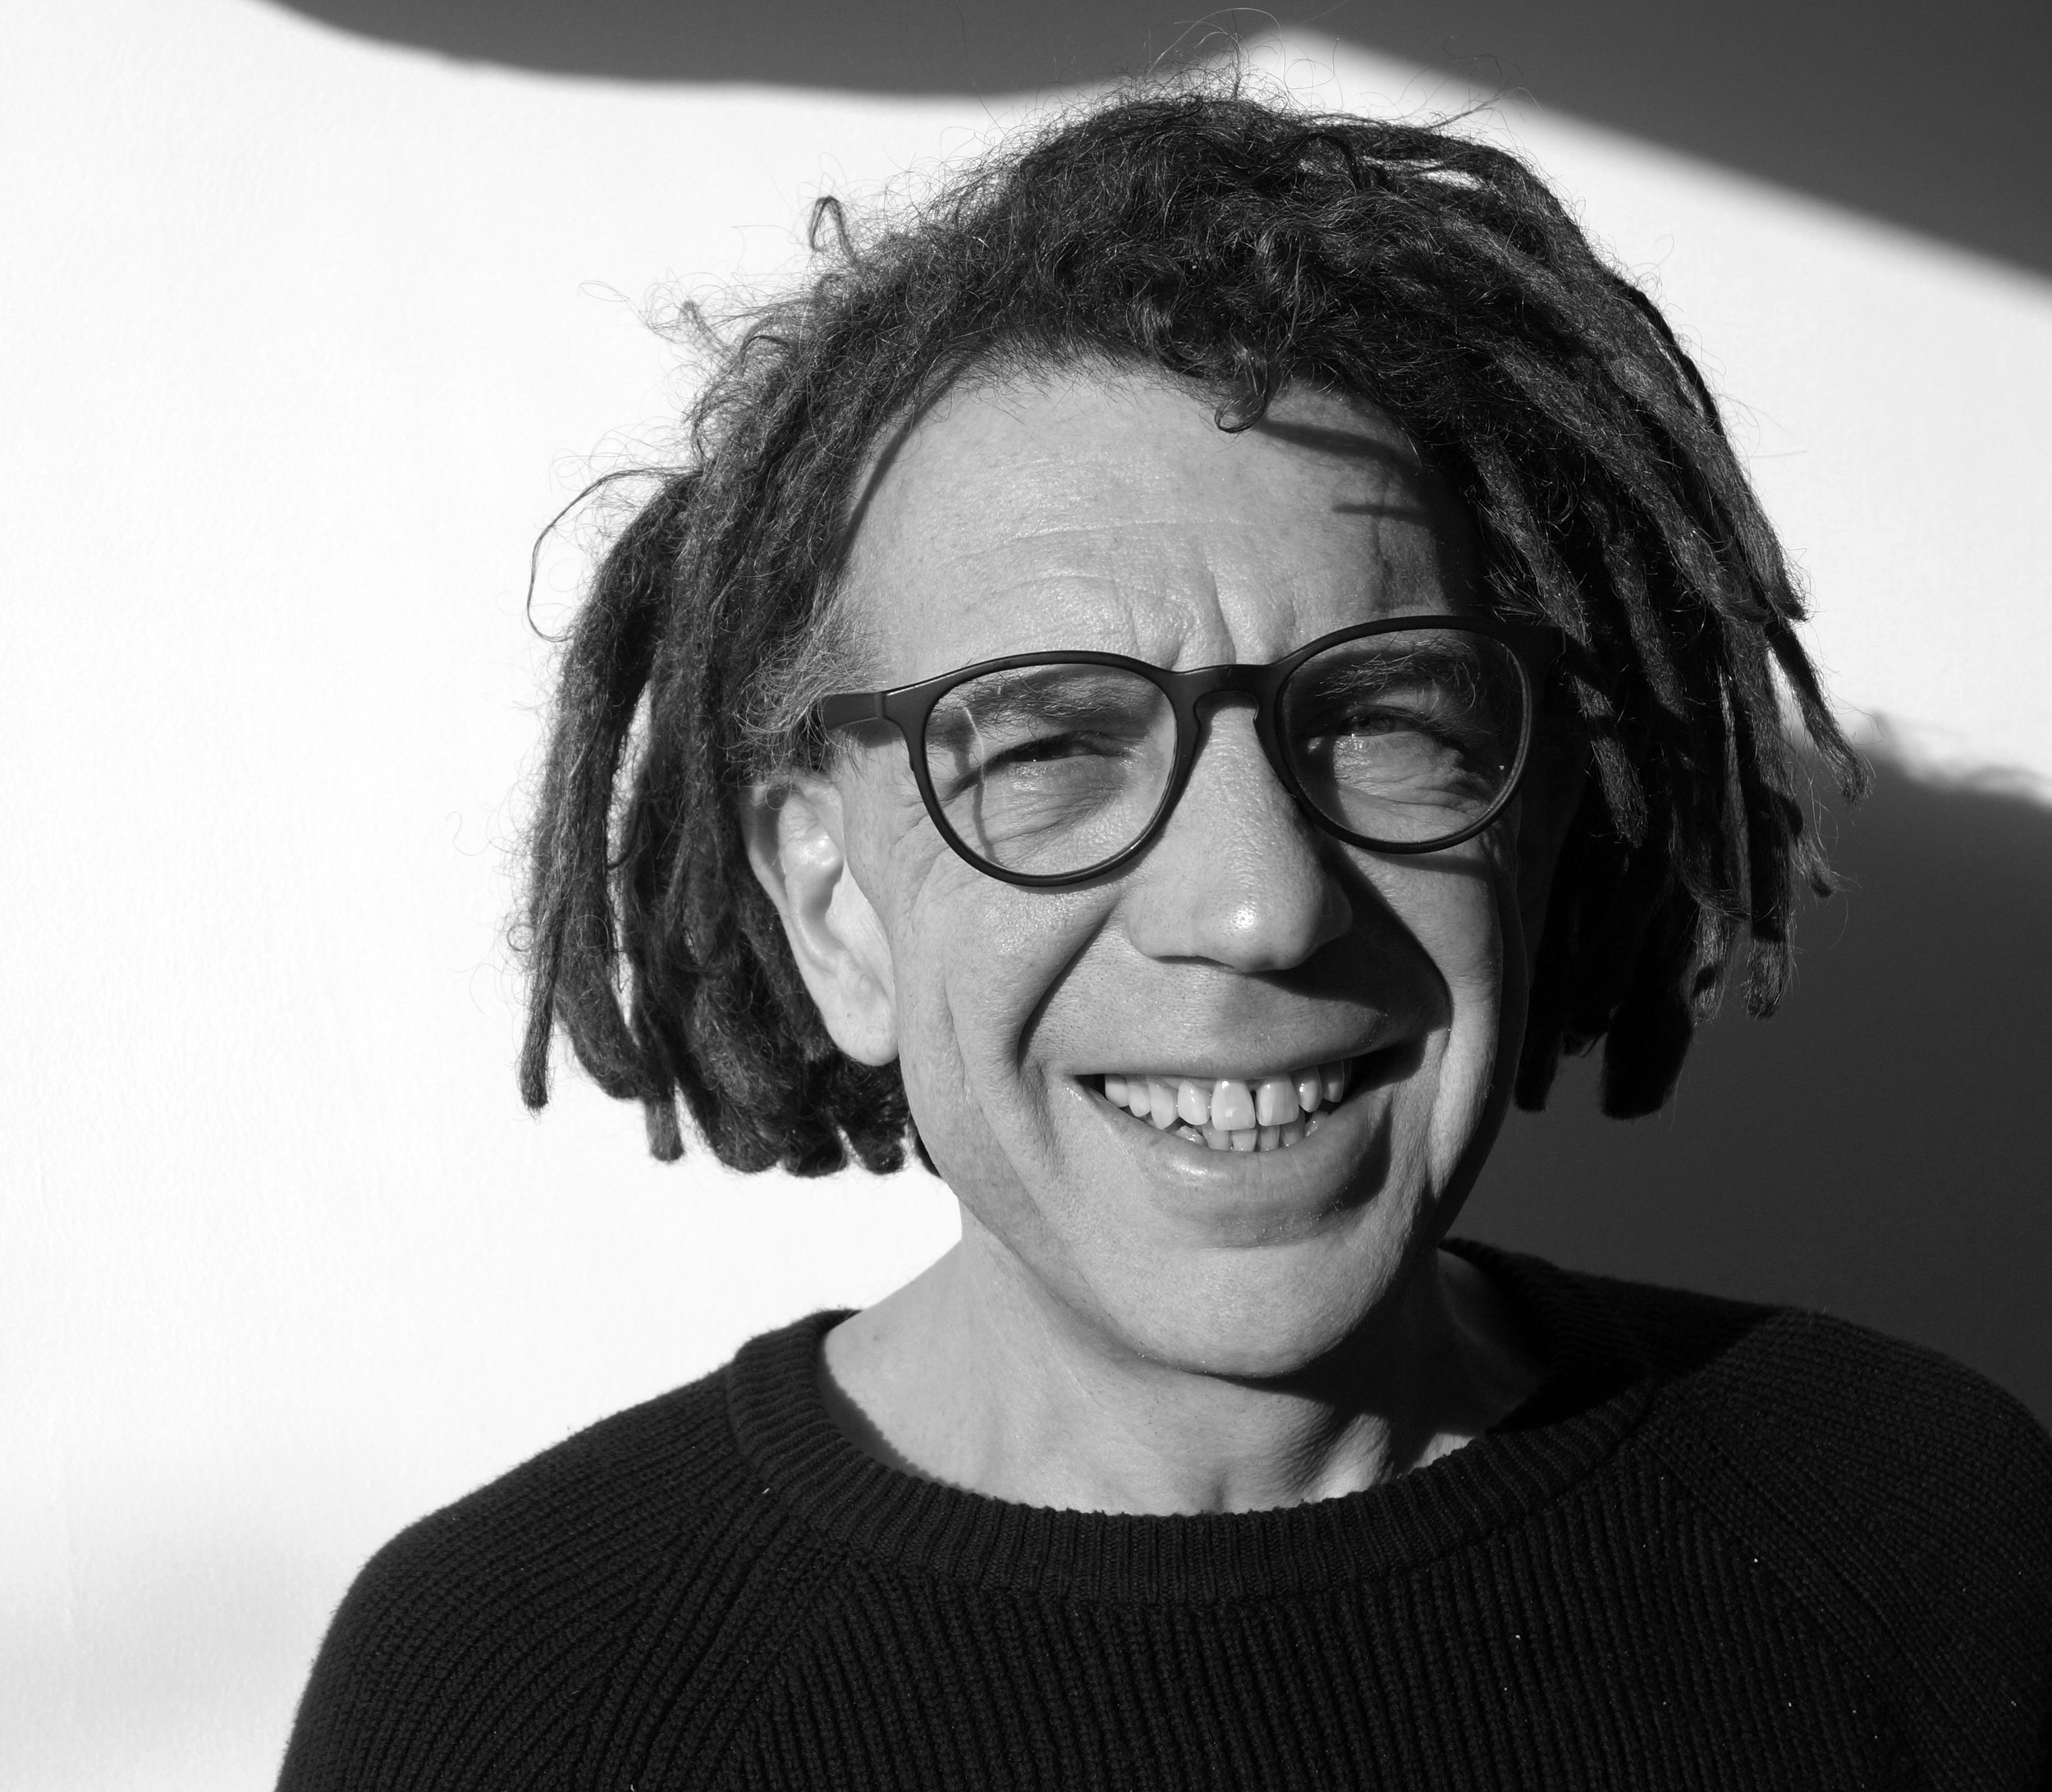 Credit: Luke Goldblatt Bond